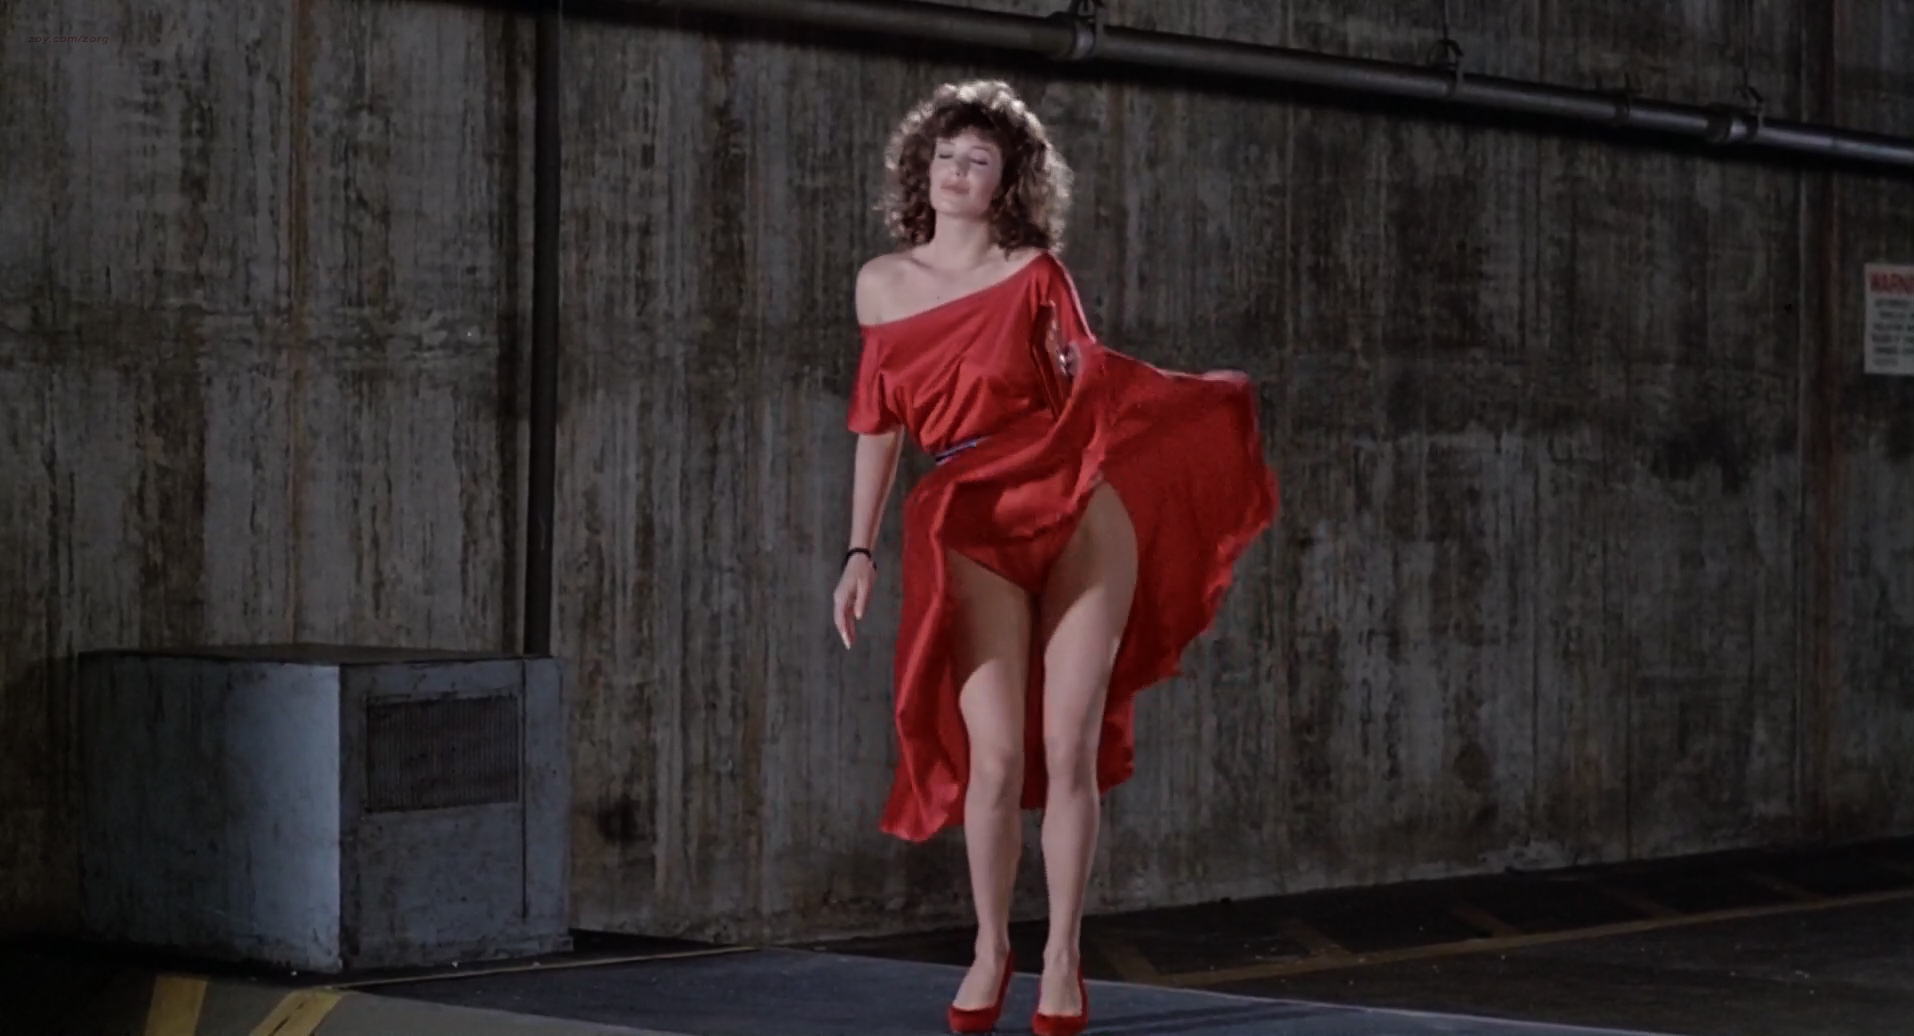 Kelly LeBrock nude brief topless and bush with slow motion – The Woman in Red (1984) hd720-1080p